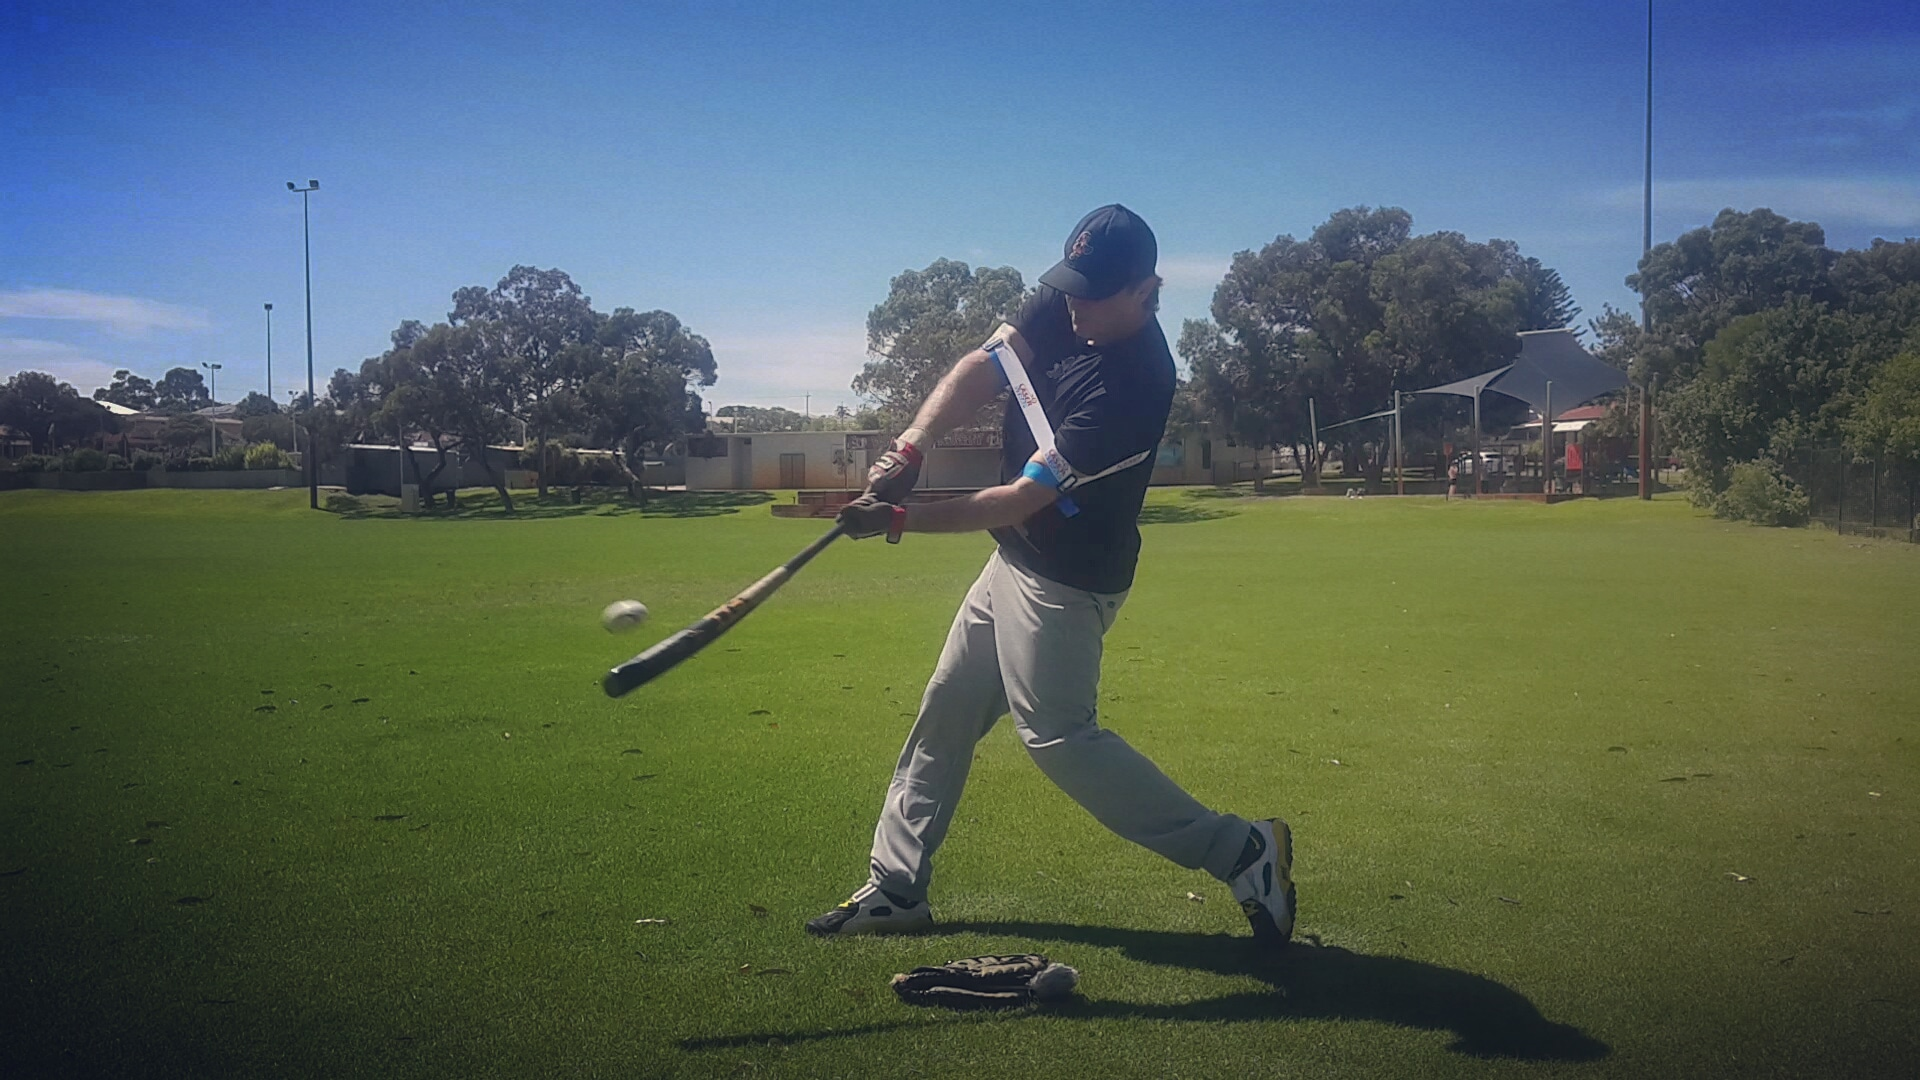 Eliminate hitting mistakes resulting from the elbows moving too far away from your body's center/core, such as casting, long-swing, etc.